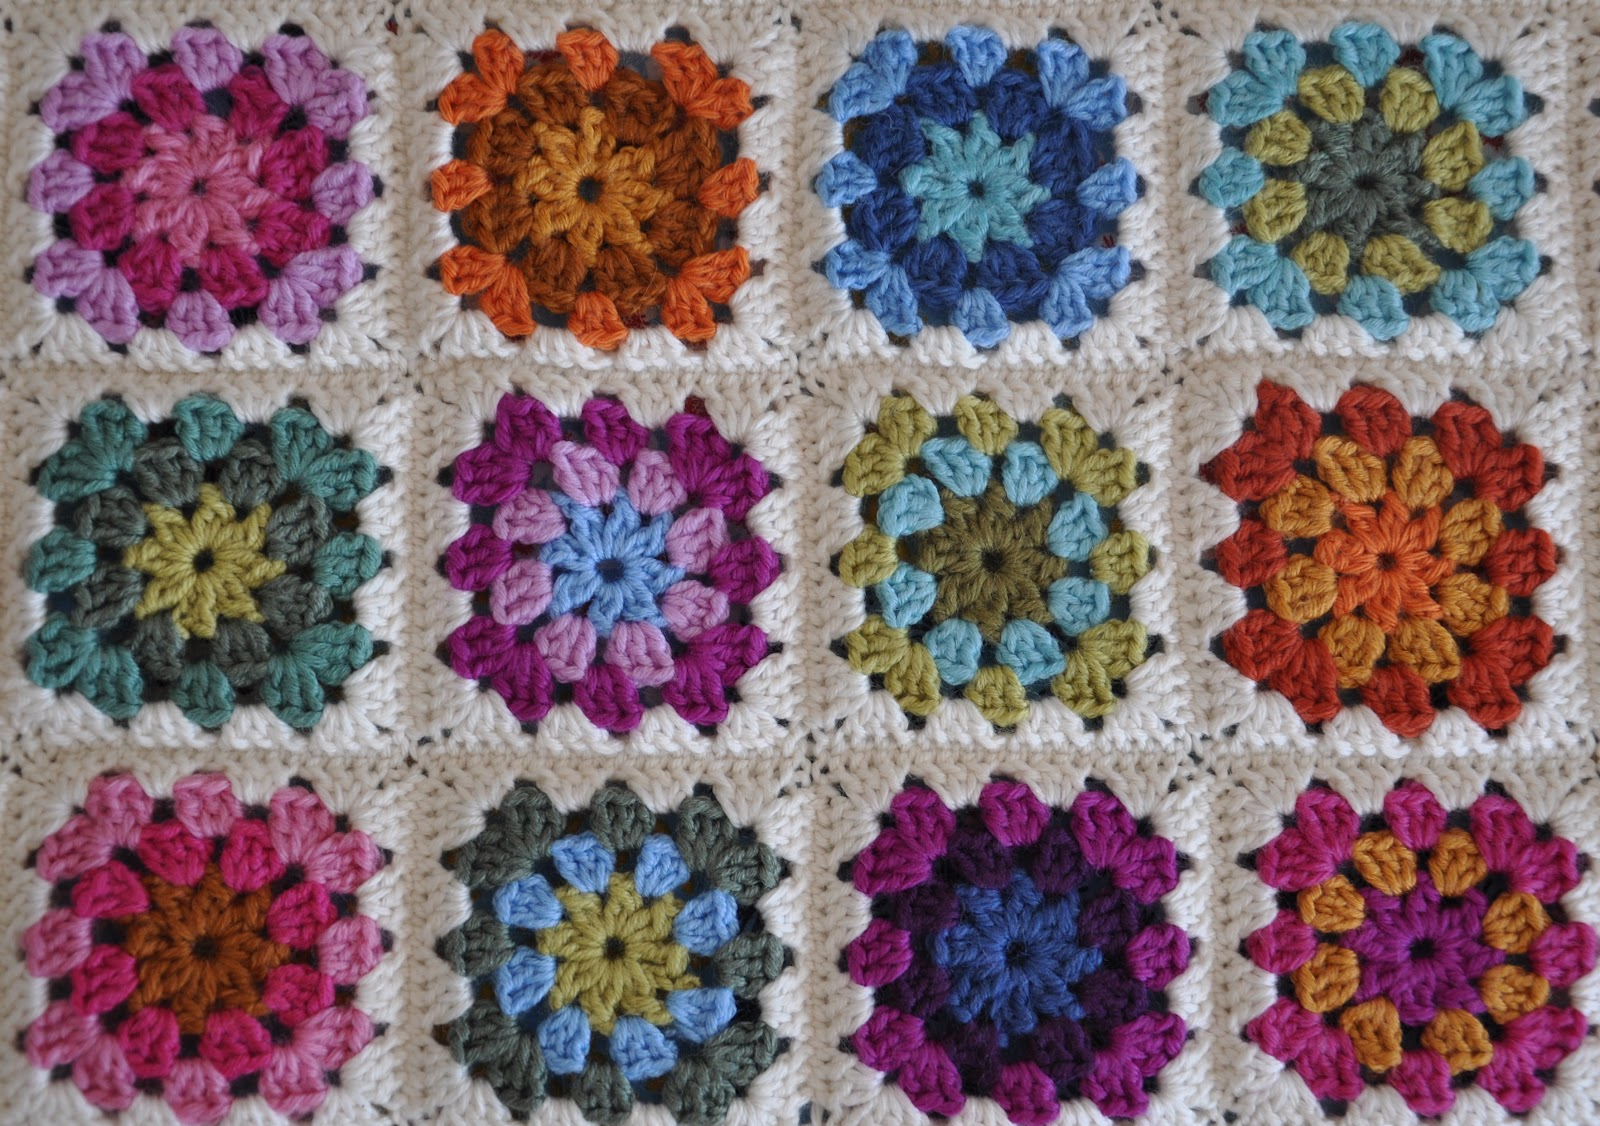 The square pattern is Summer Garden Granny Square by Attic 24